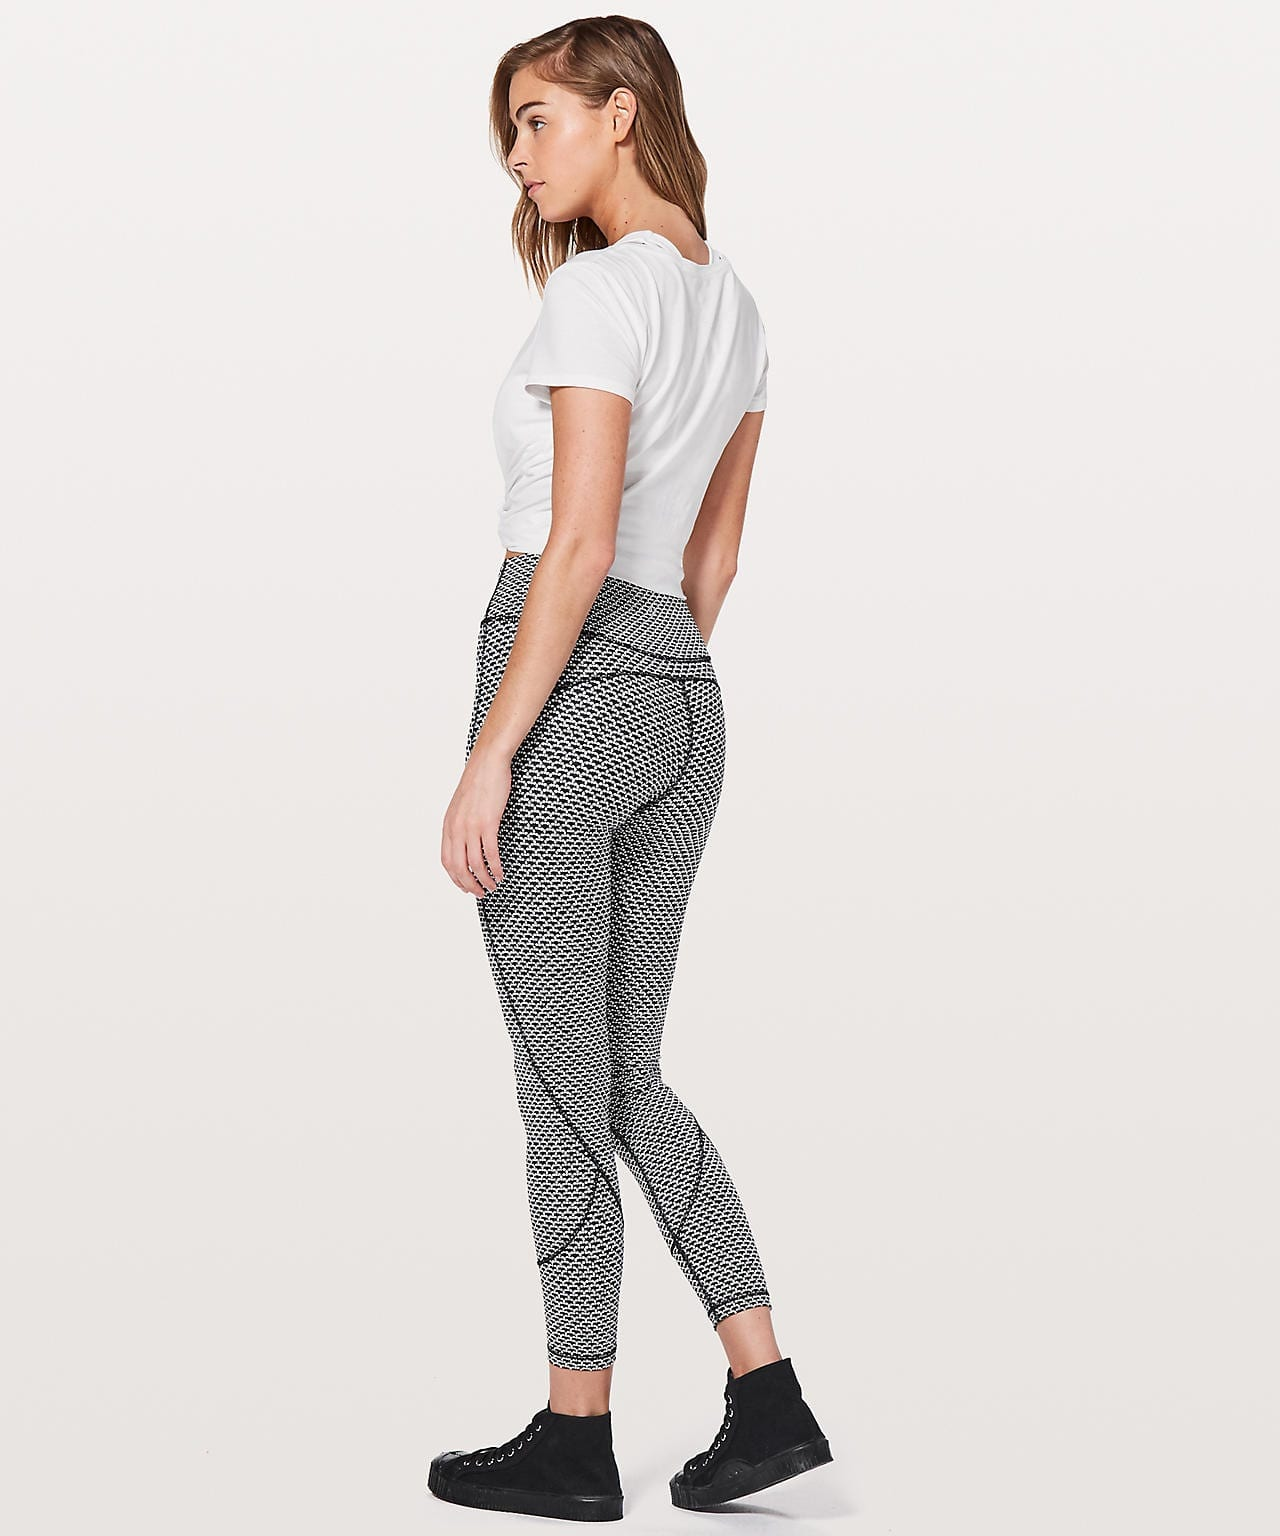 In Movement 7/8 Tight Lululemon New Product Upload